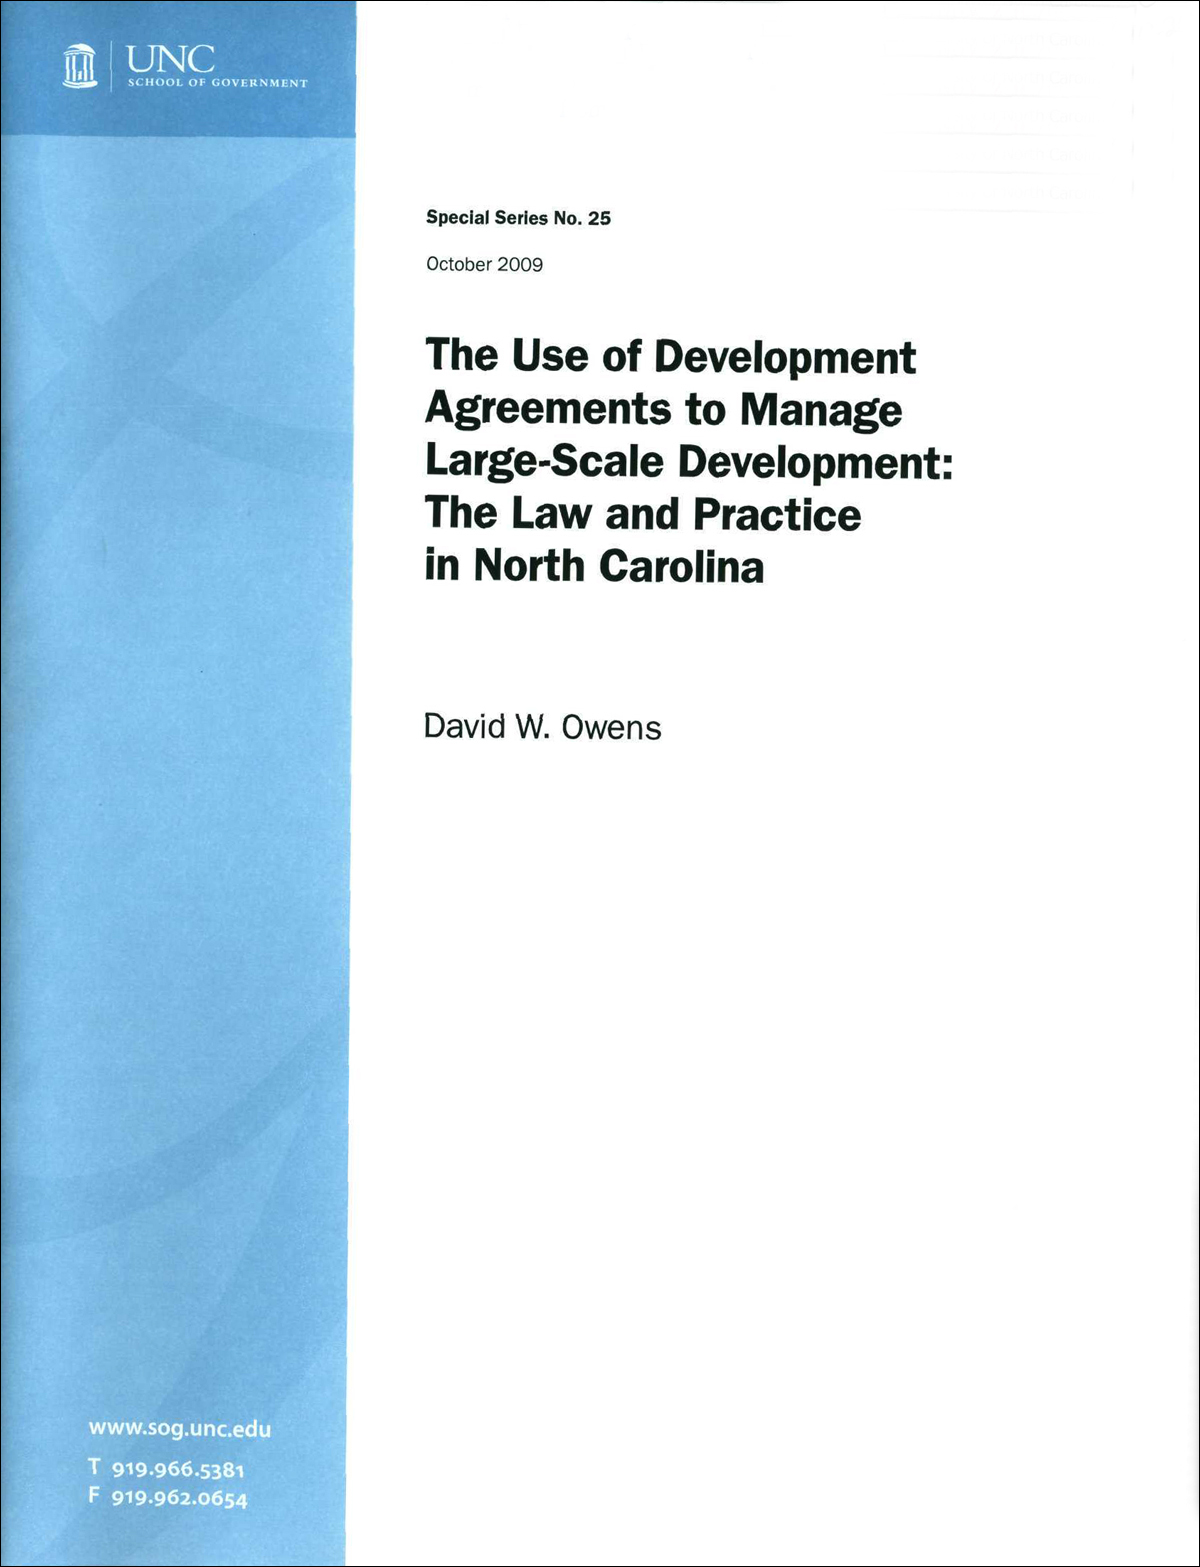 The Use of Development Agreements to Manage Large-Scale Development: The Law and Practice in North Carolina, by David W. Owens, Special Series No. 25, October 2009